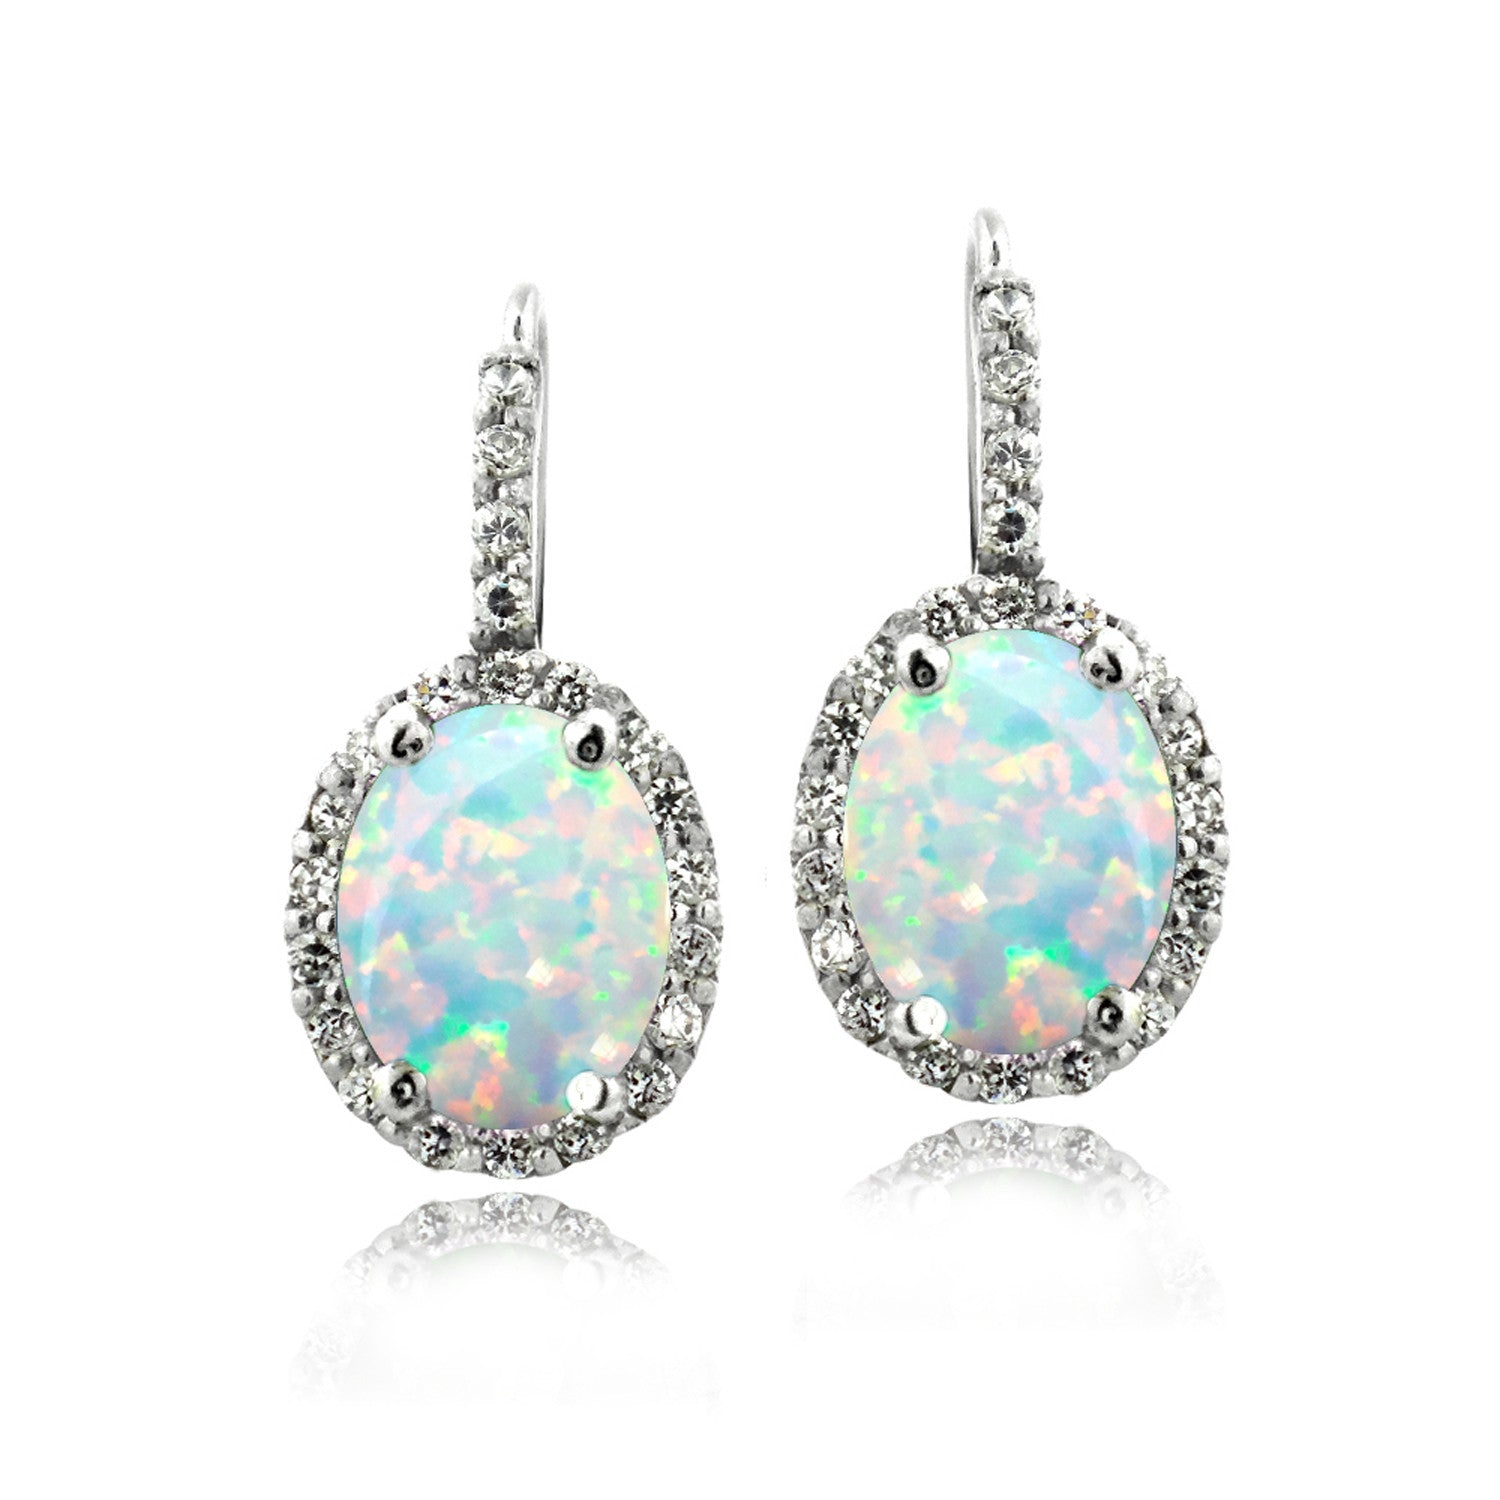 Oval Cut Gemstone Accent Sterling Silver Leverback Birthstone Earrings - October Created Opal